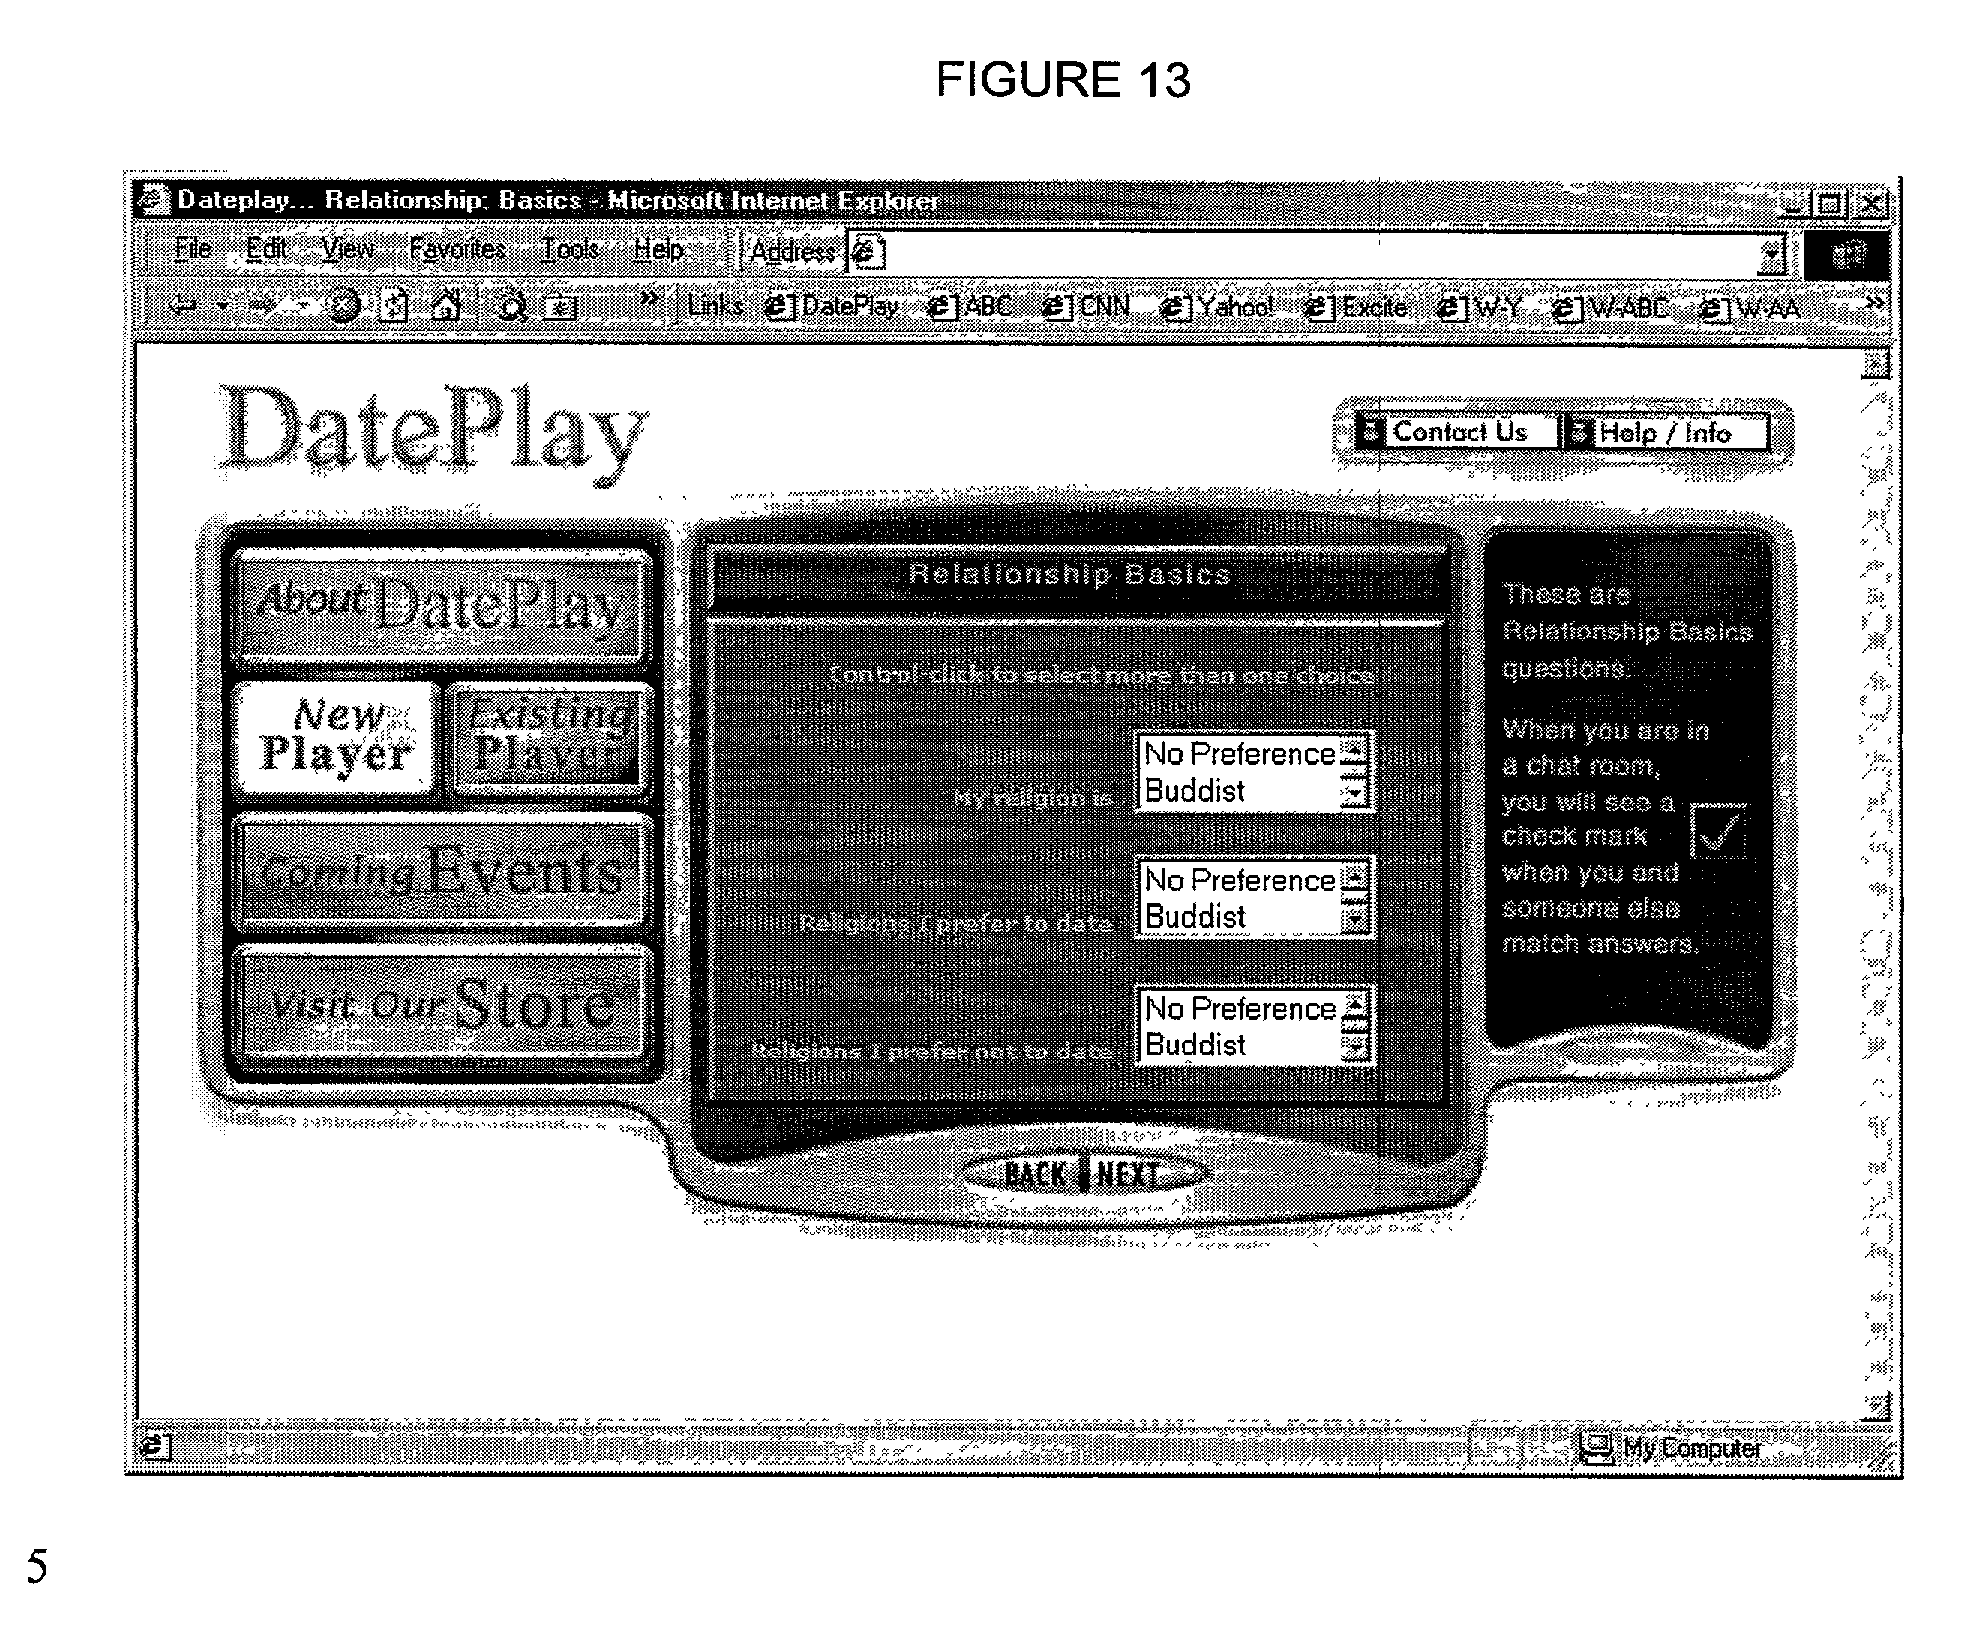 dating website patents This post answers the question can you patent a website and explains some basics on the patent process related to software and websites.